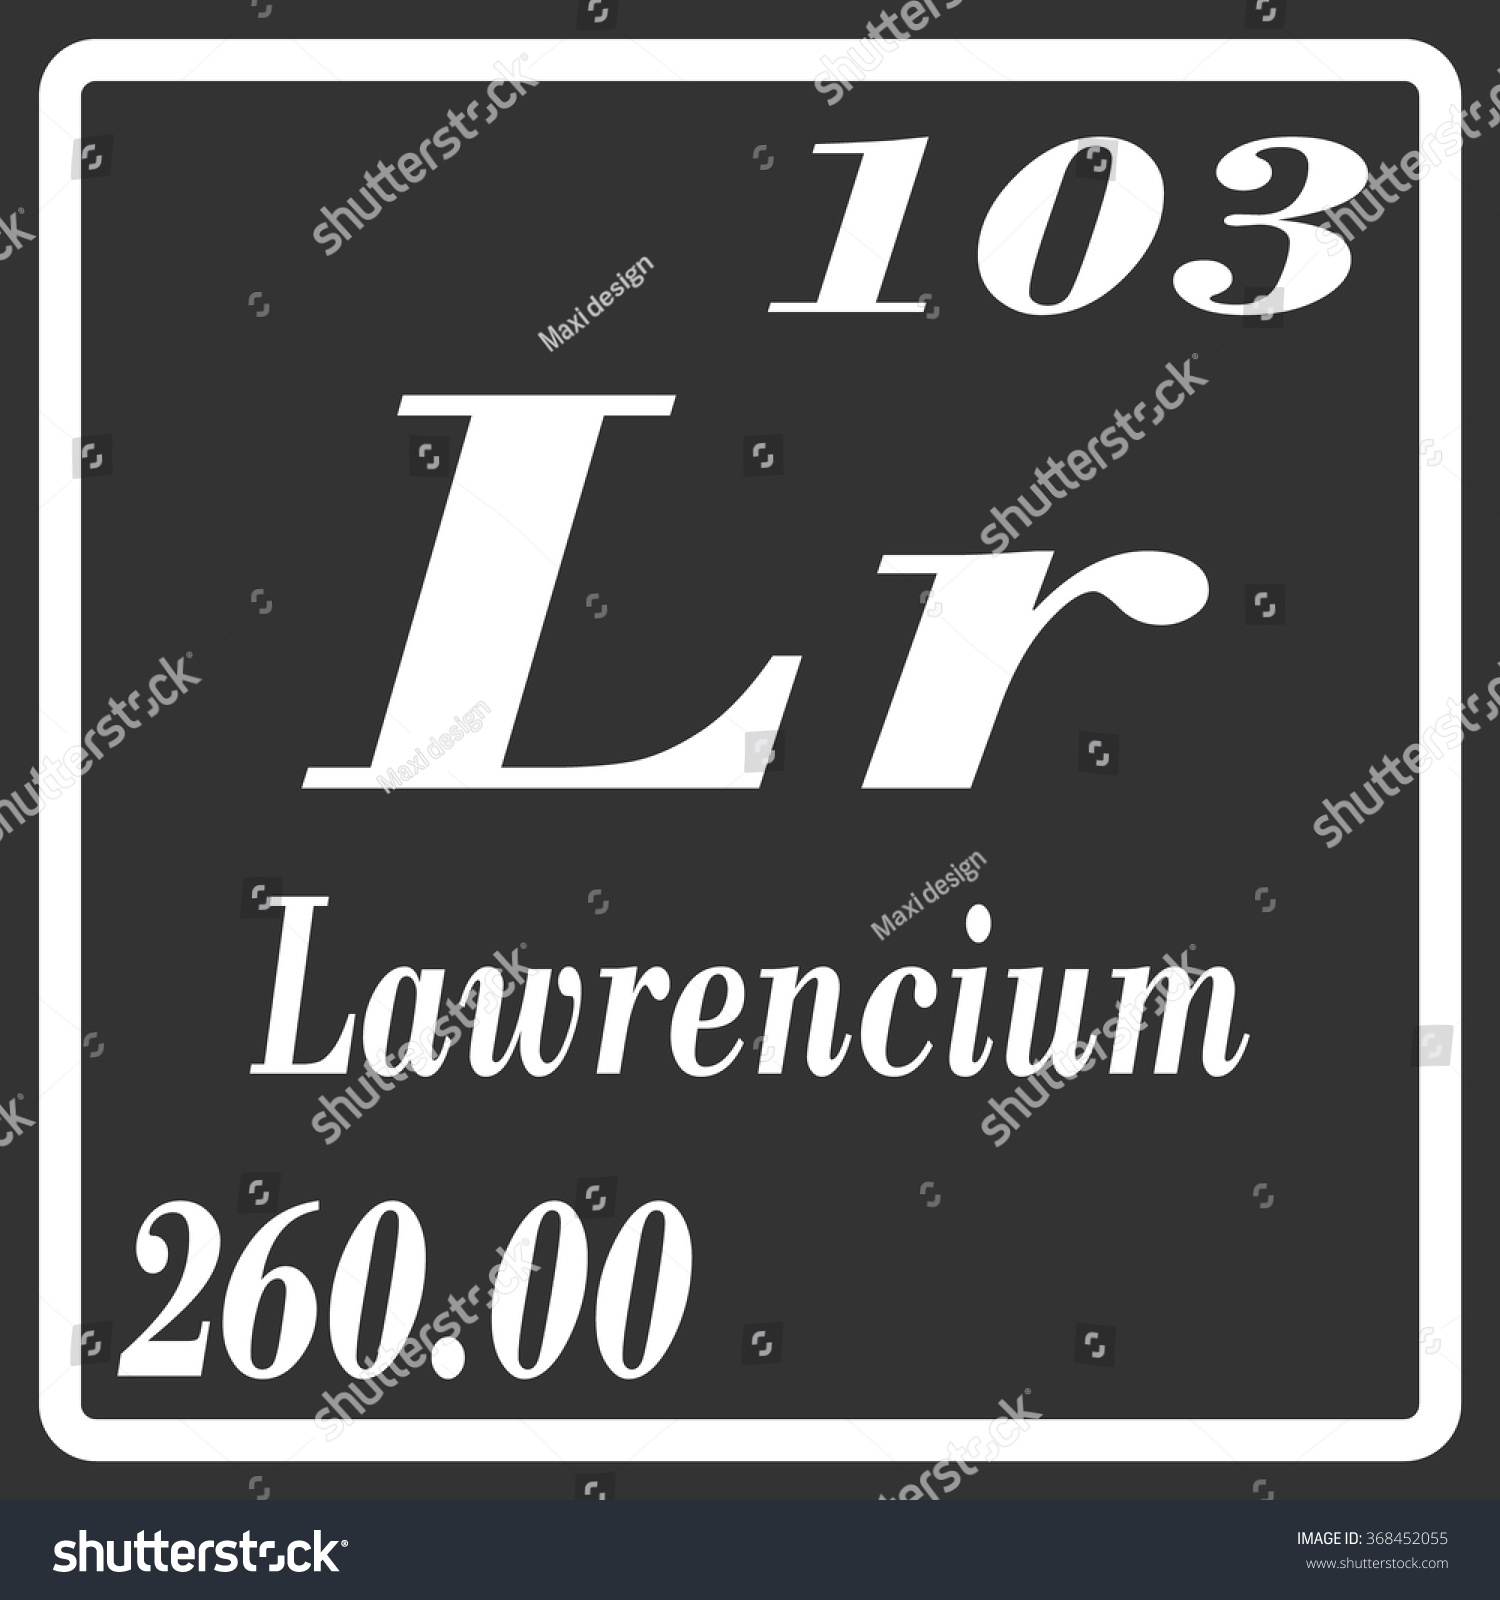 Lawrencium periodic table gallery periodic table images periodic table lawrencium images periodic table images periodic table lawrencium images periodic table images periodic table gamestrikefo Images